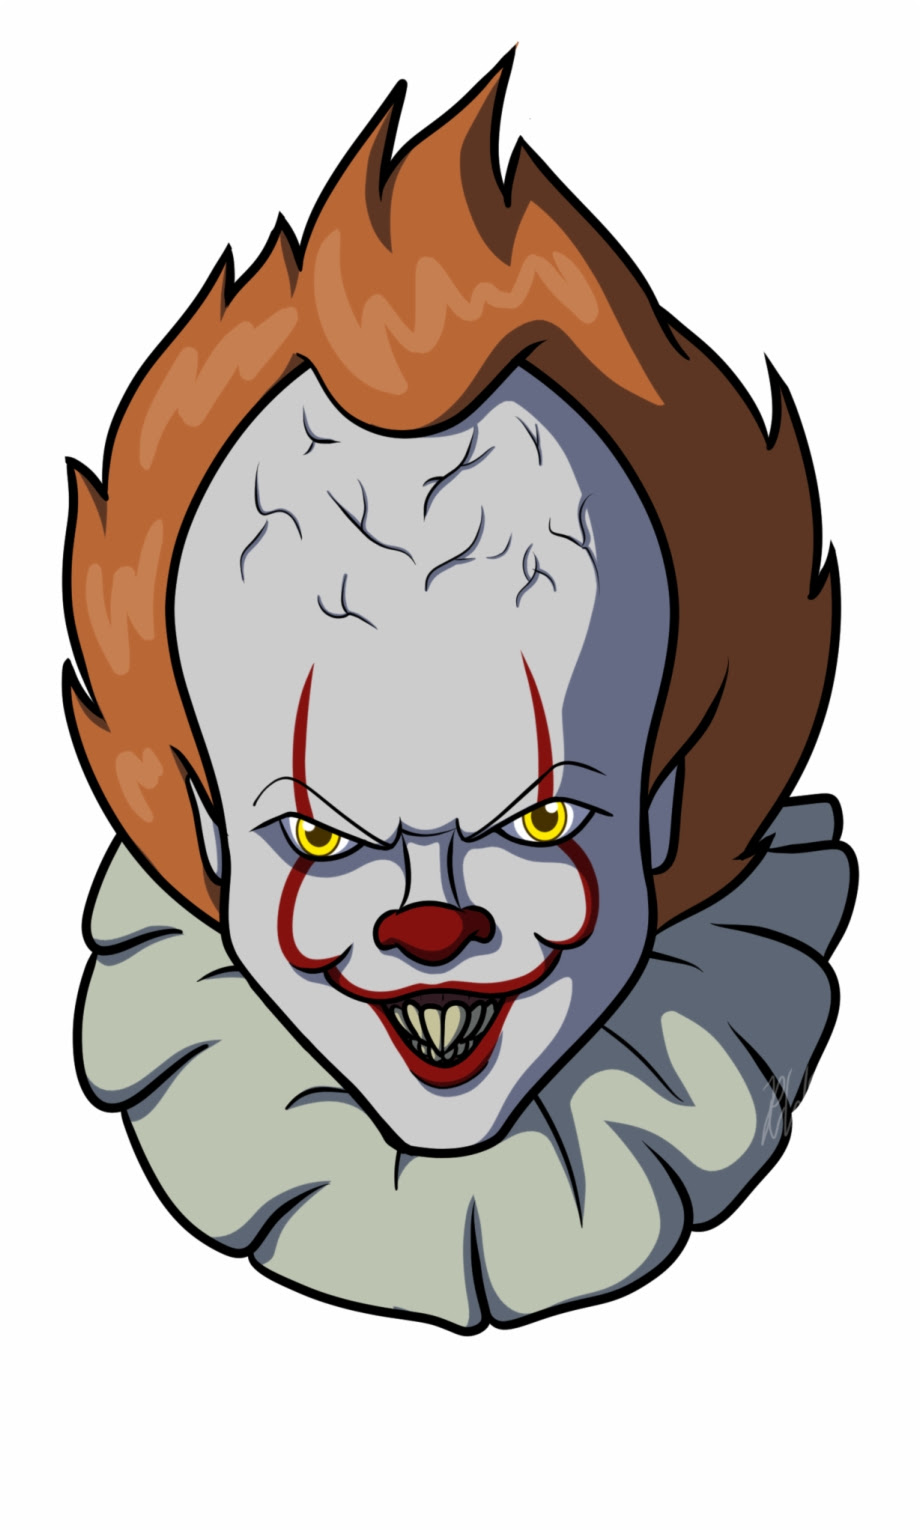 How To Draw Pennywise Face : pennywise, Drawing, Easy:, Pennywise